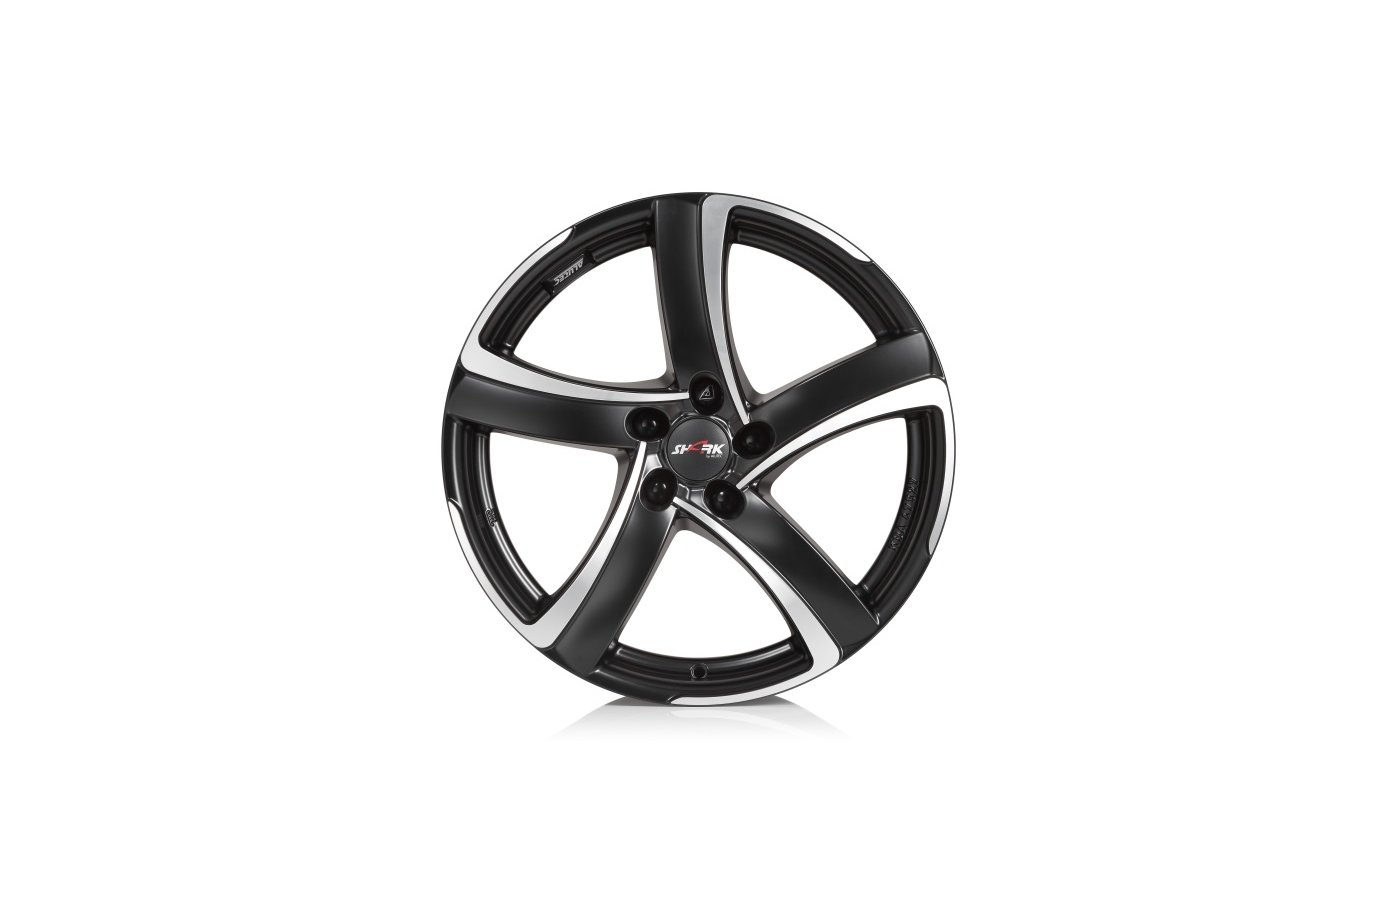 Диск ALUTEC Shark 7.5x17/5x114.3 D70.1 ET38 Racing Black Front Pol